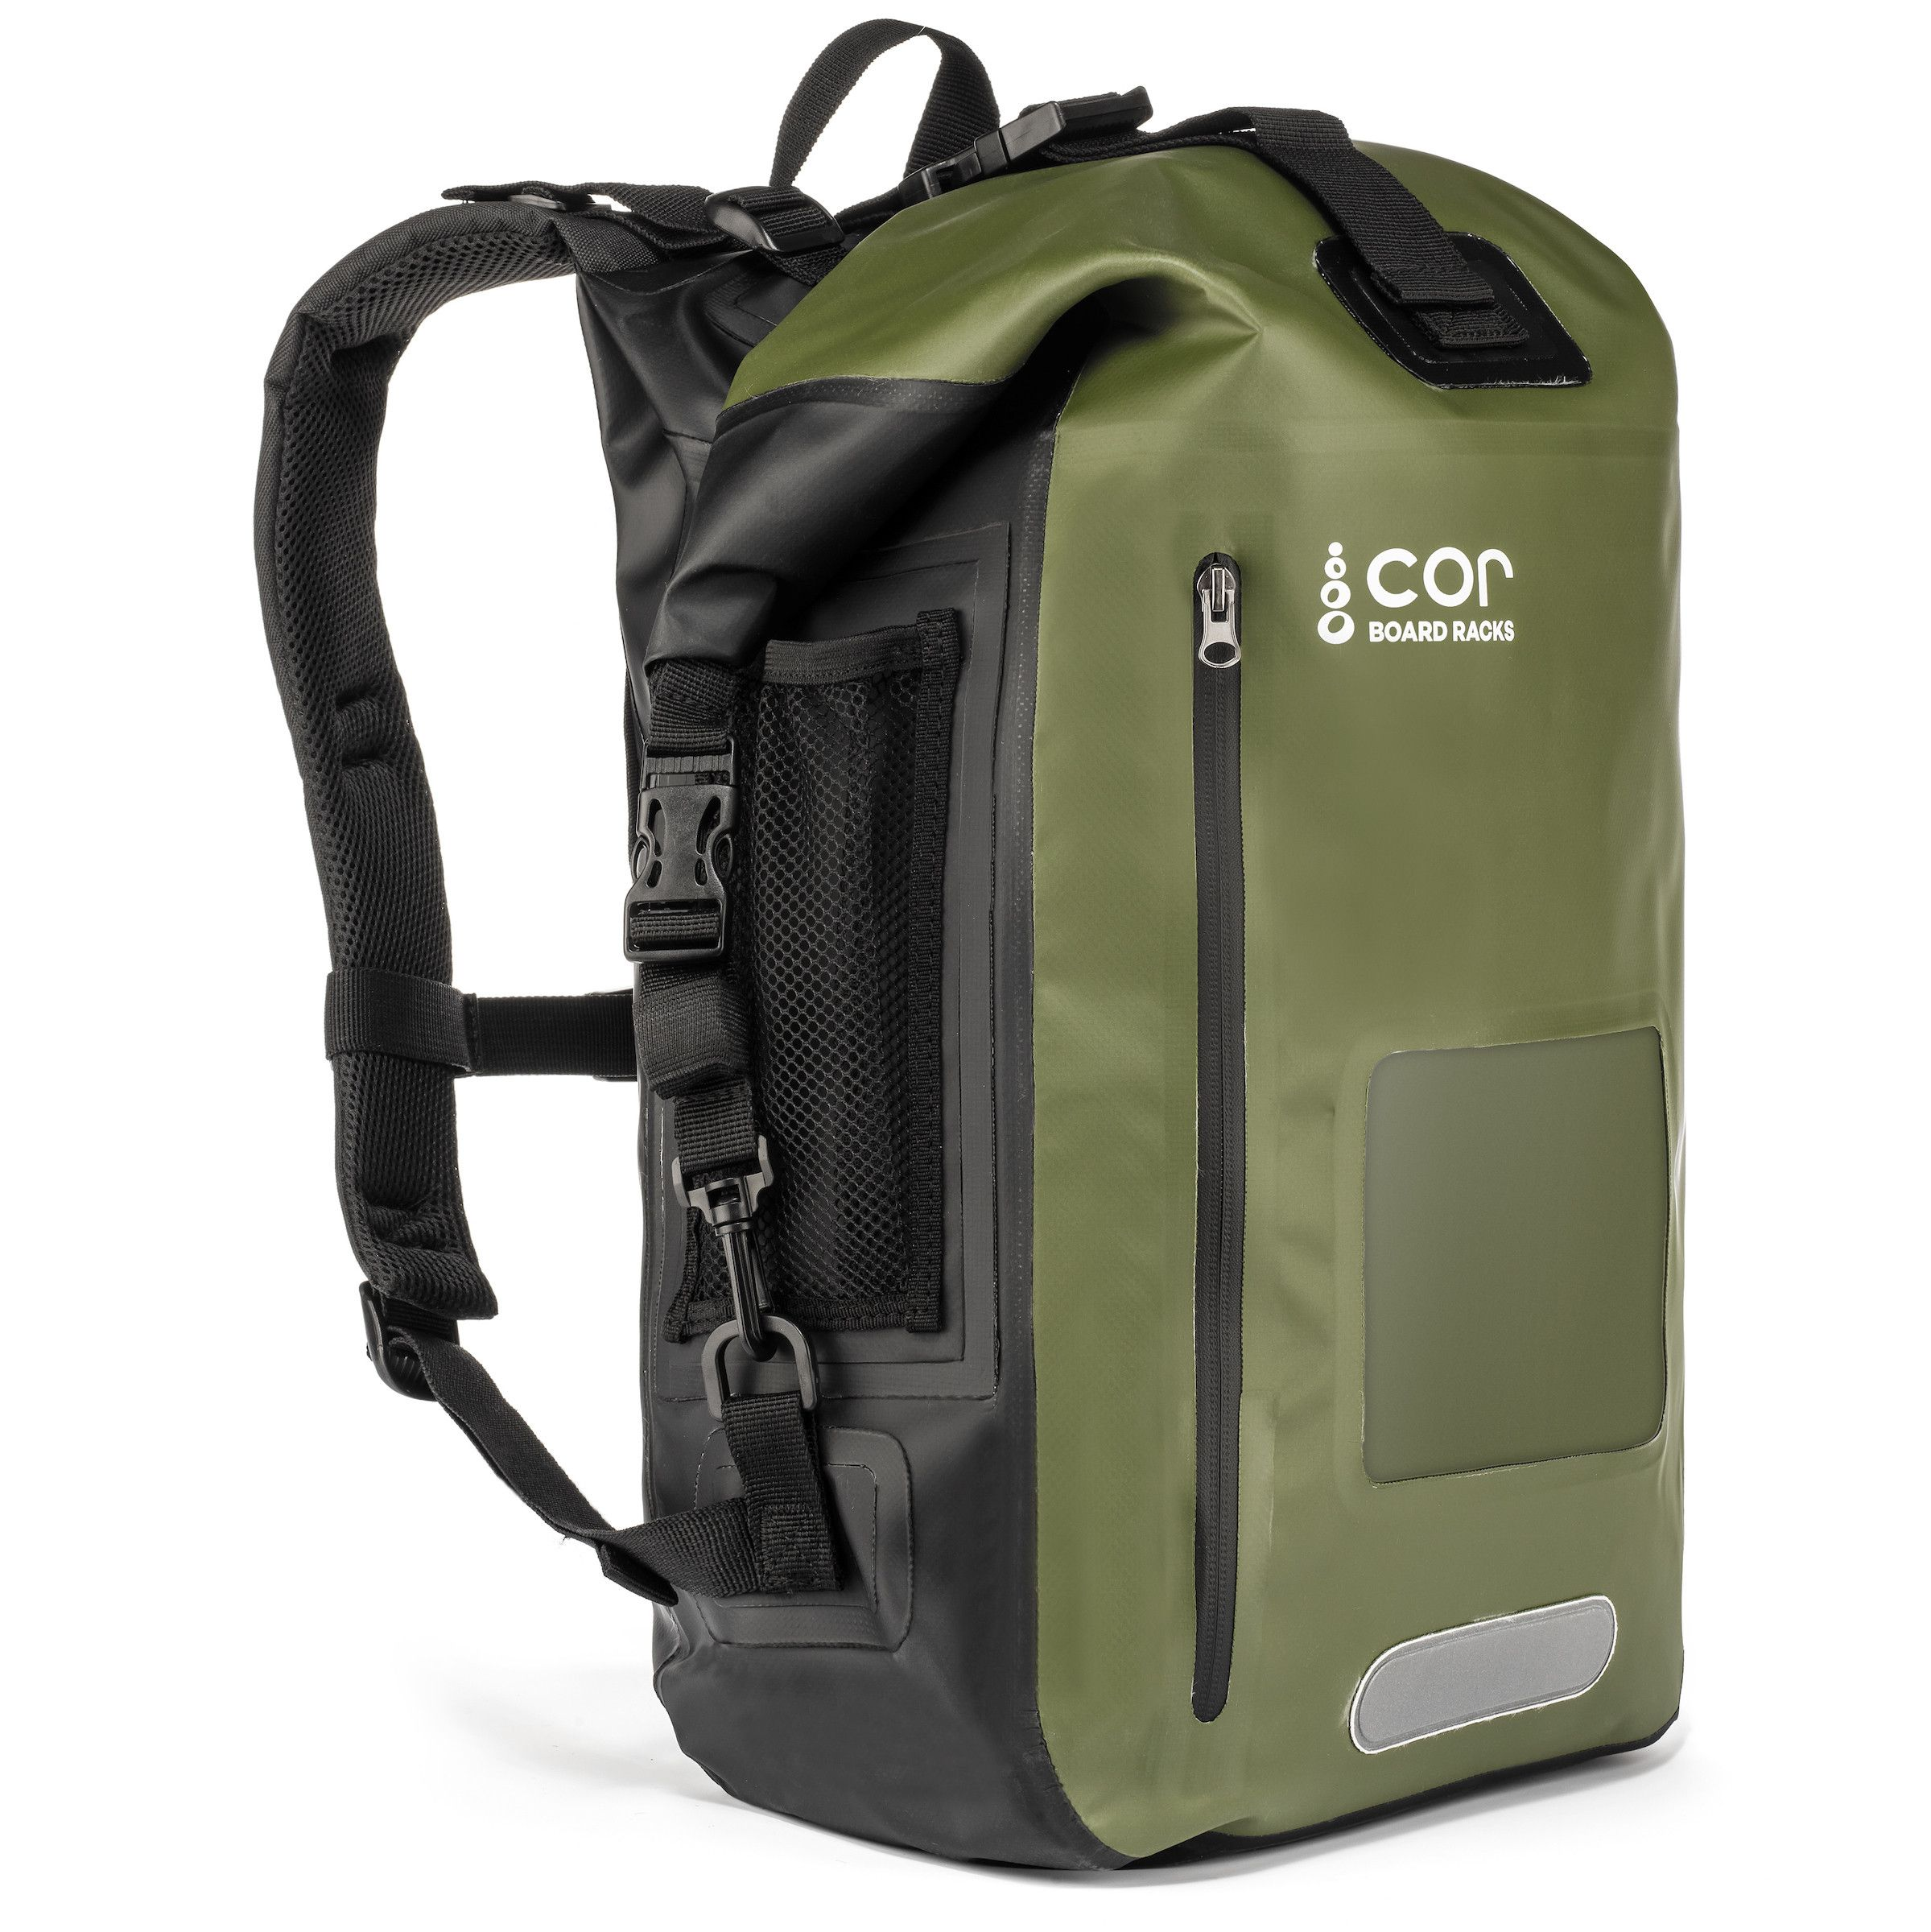 Waterproof Dry Backpack with Laptop Sleeve 40L - NEW 2019  b0de04411dca5